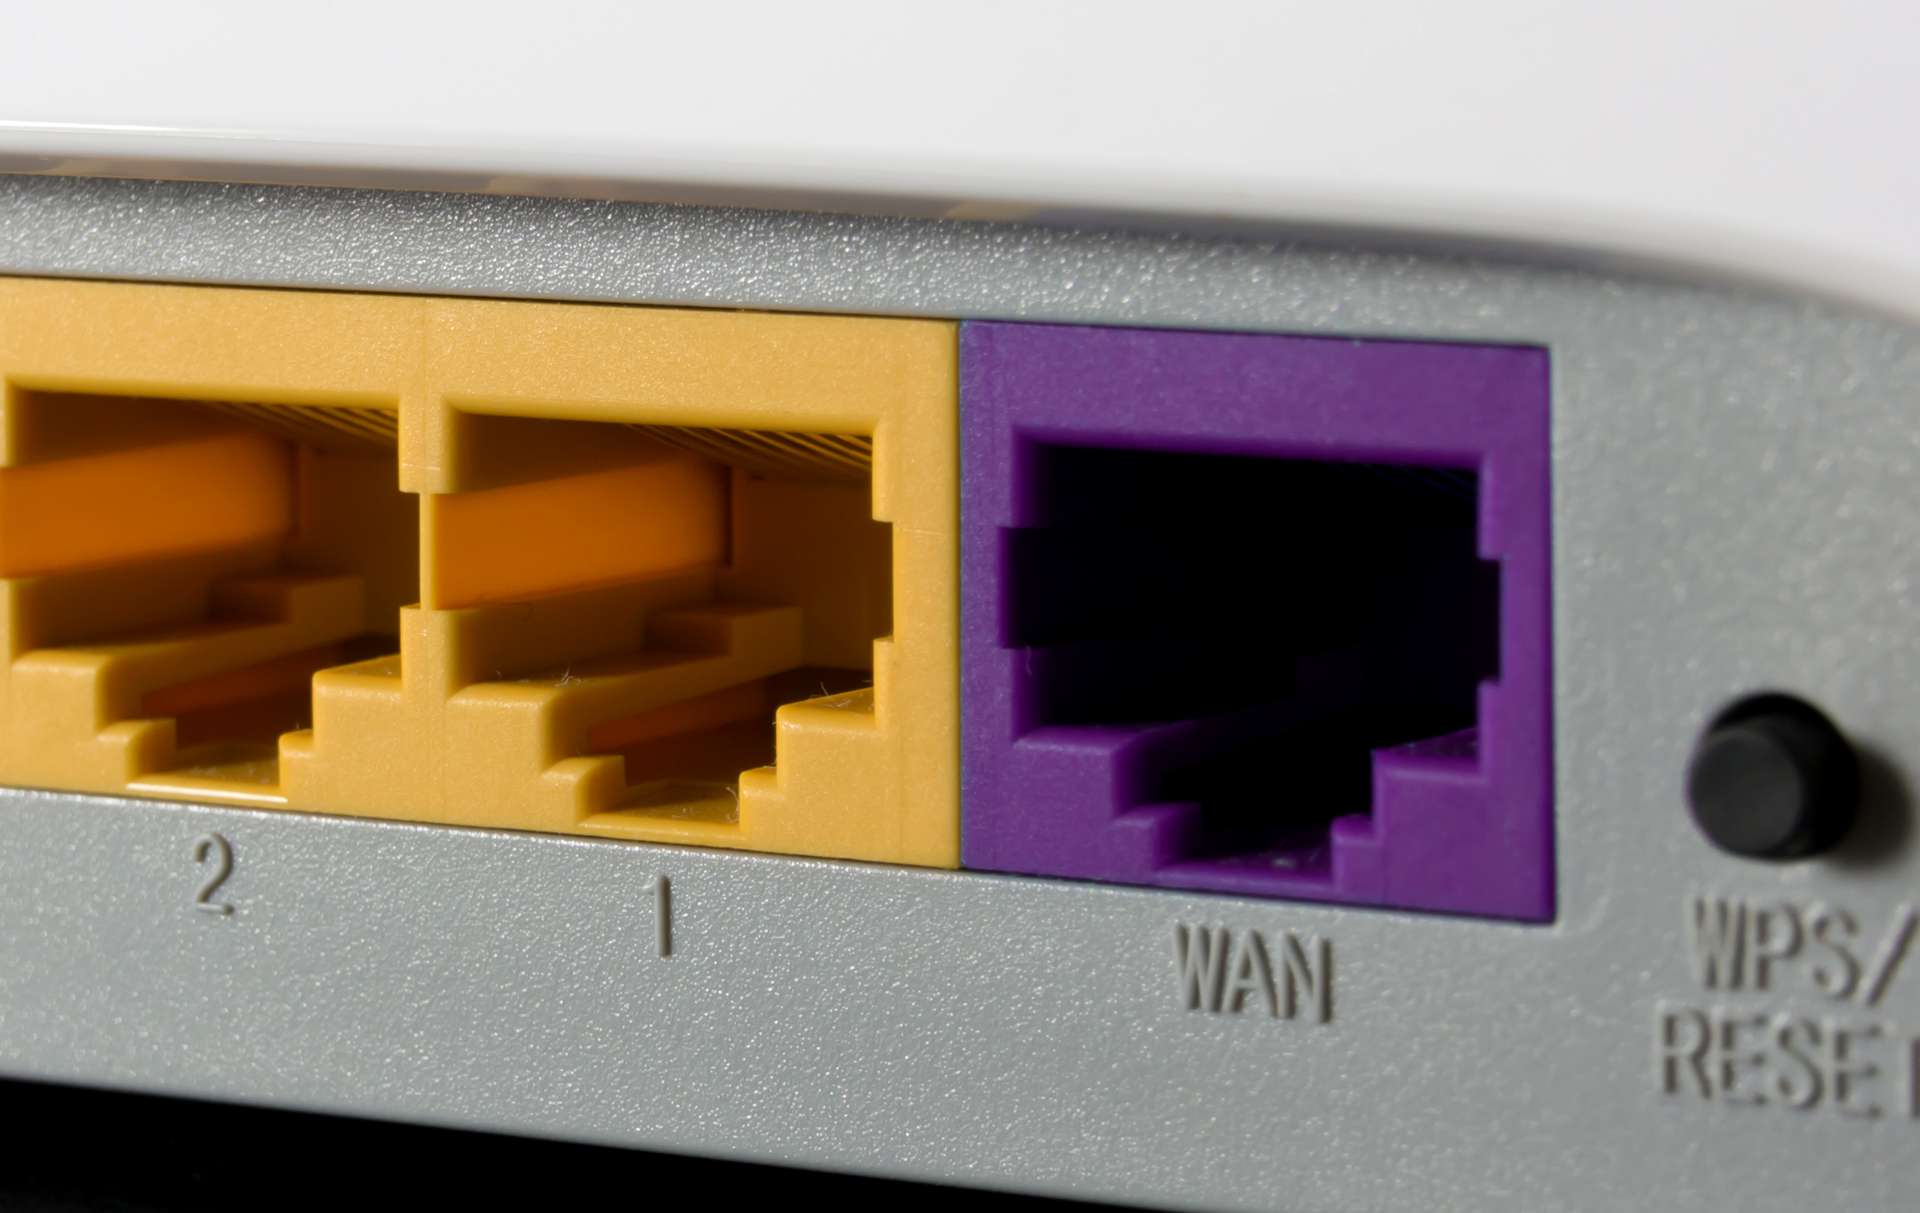 WAN and LAN ports on the back of a modem.